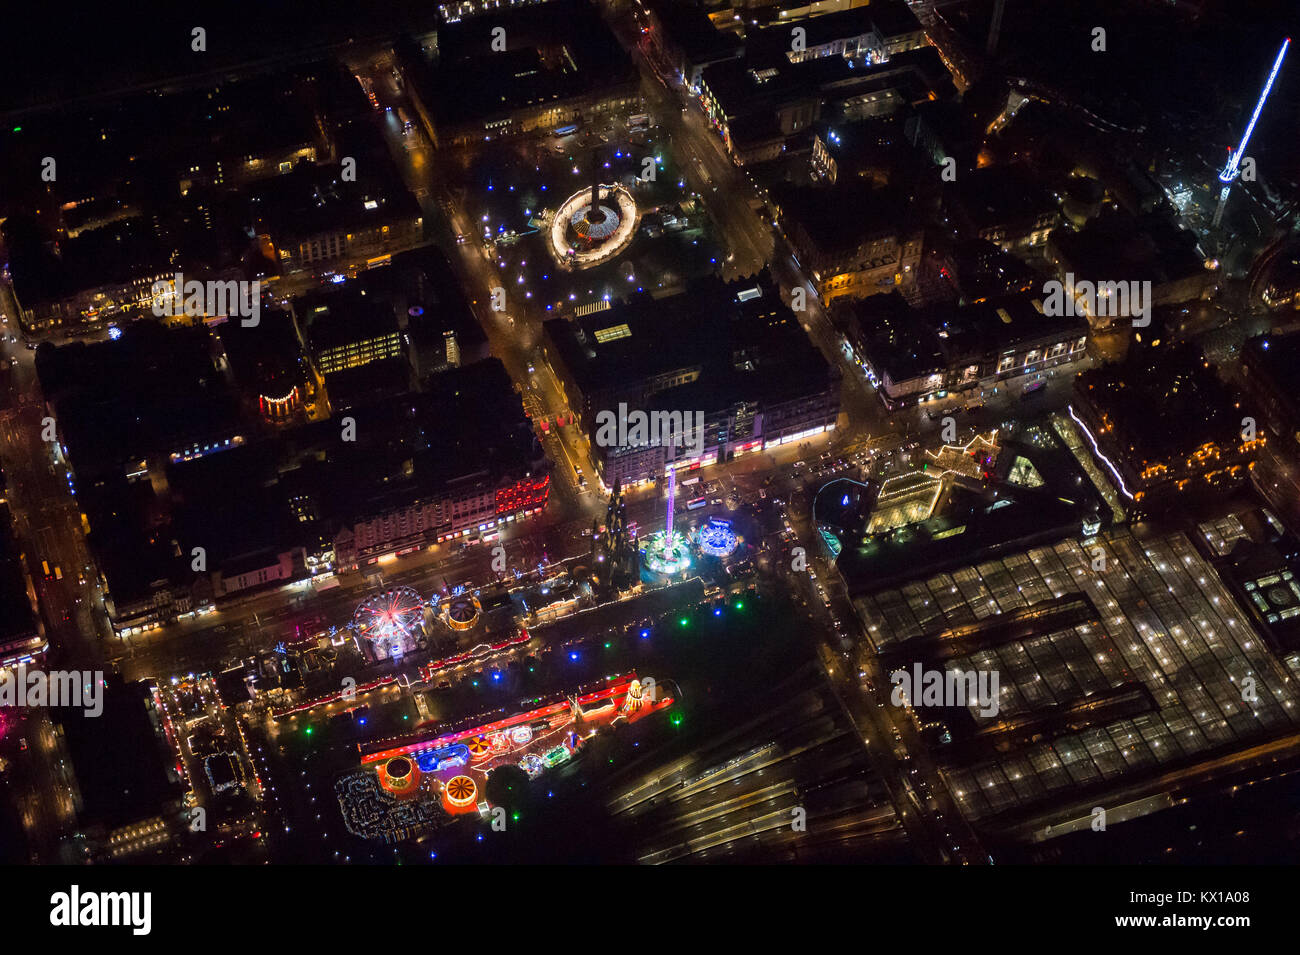 Edinburgh Christmas entertainment in Princes street gardens seen from above at night. - Stock Image